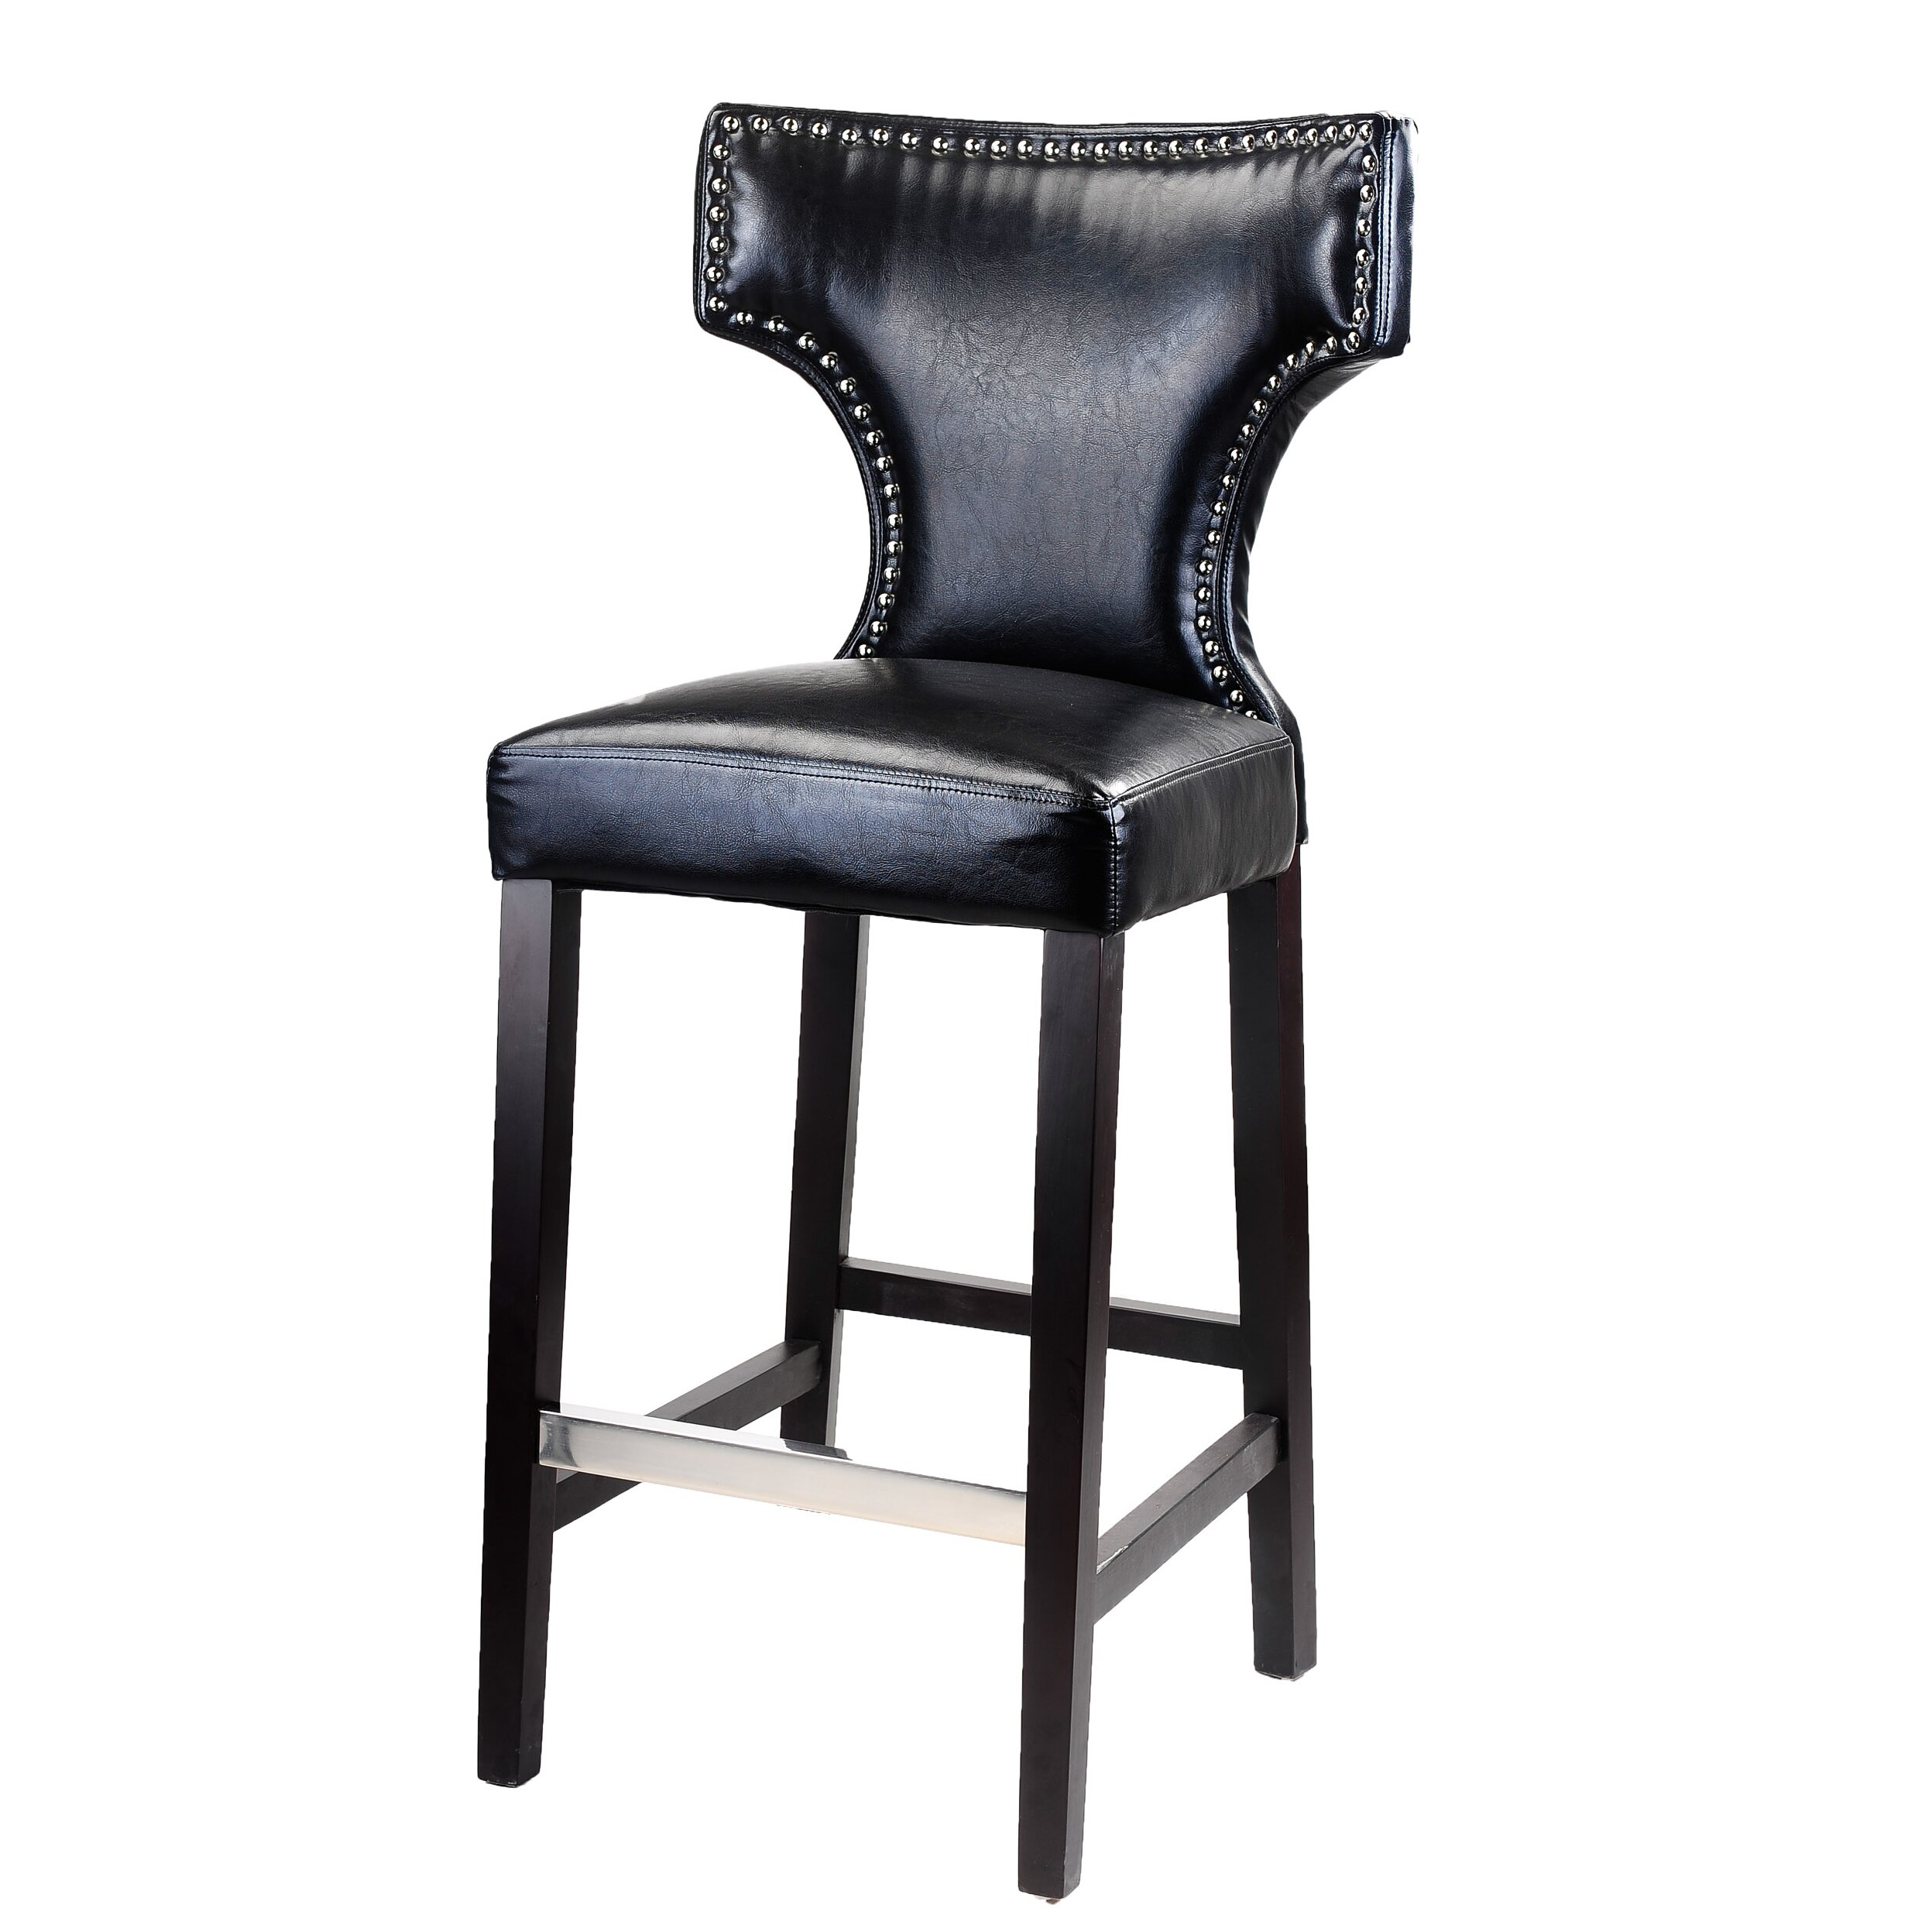 CorLiving Kings 30quot Bar Stool amp Reviews Wayfair : CorLiving Kings 30 Barstool from www.wayfair.com size 2495 x 2495 jpeg 532kB